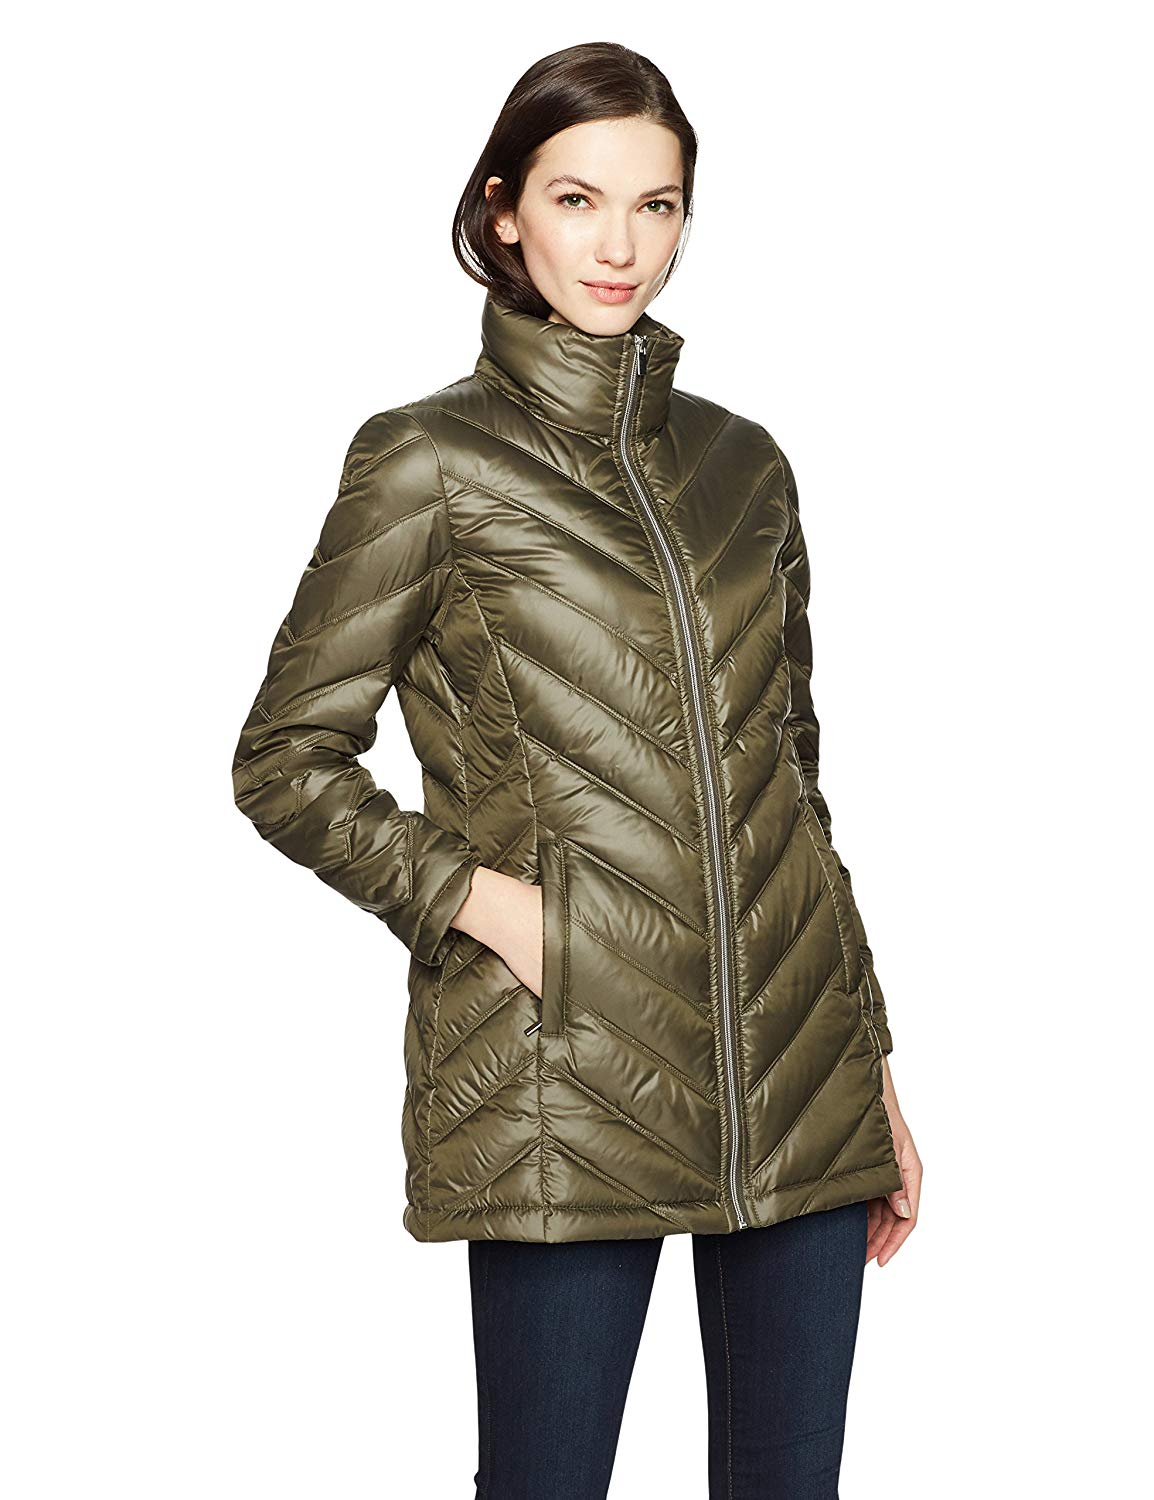 Womens Packable Down Jacket